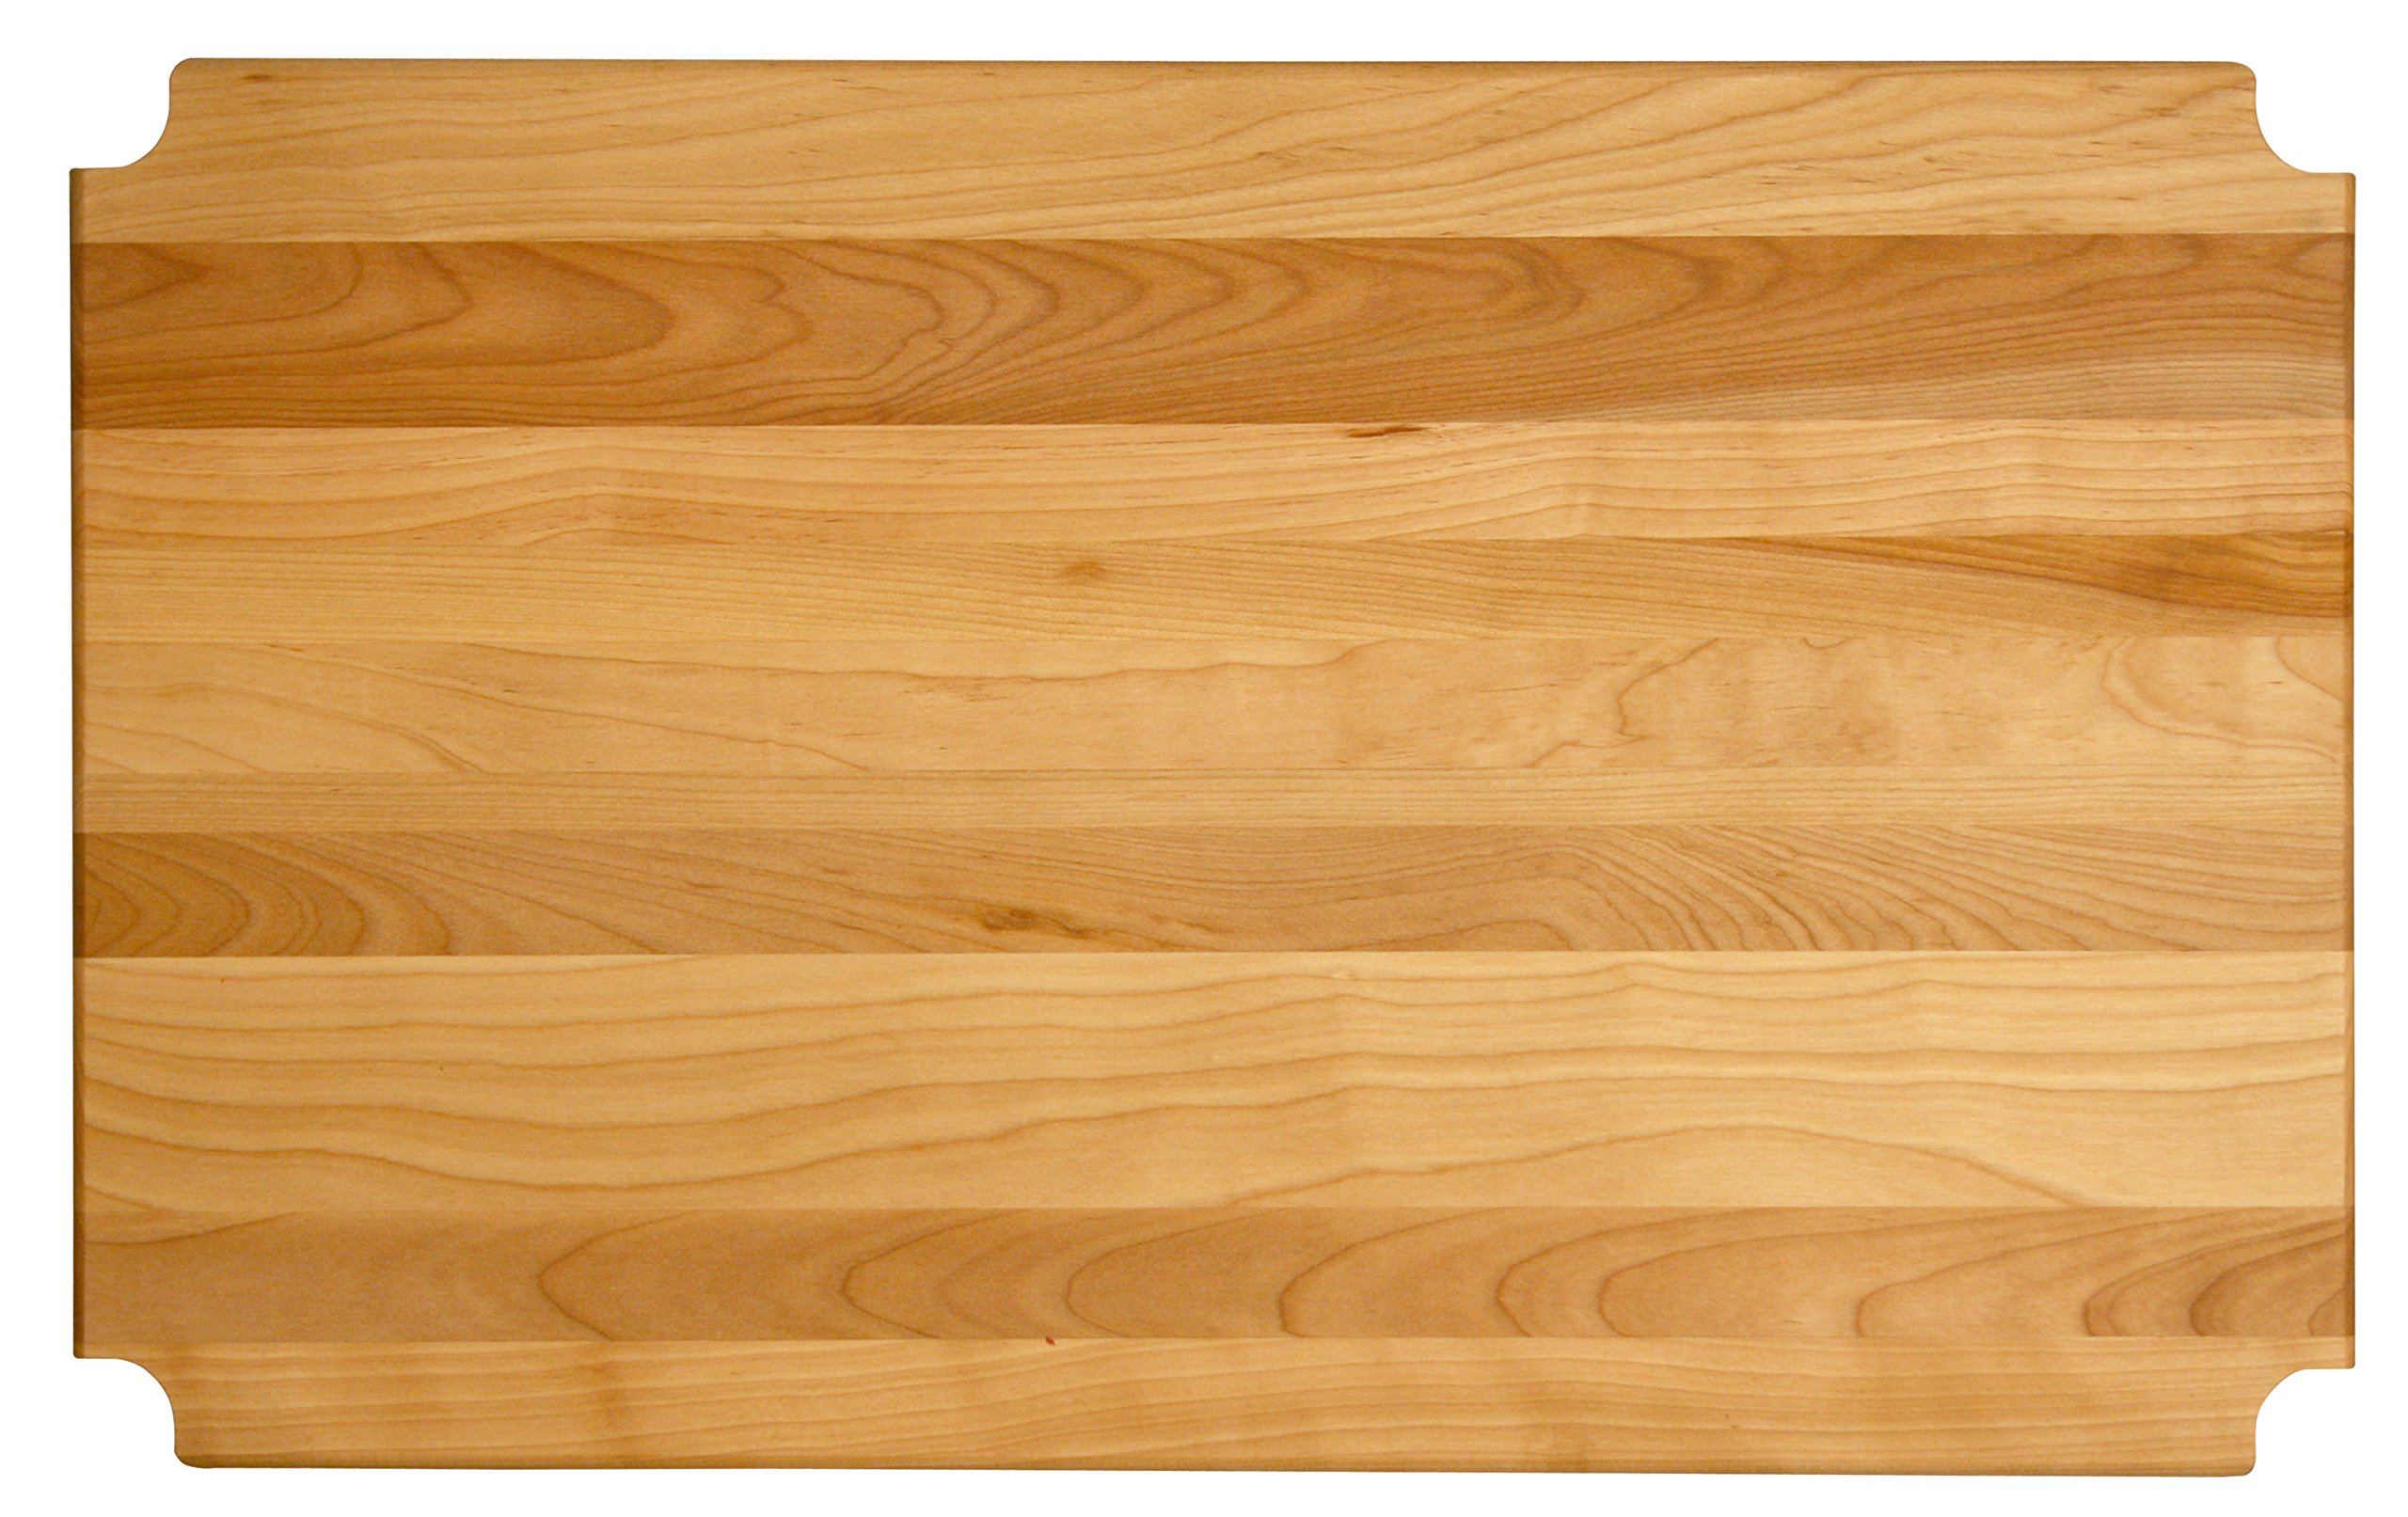 12'' Deep x 24'' Wide Maple Butcher Block by Omega